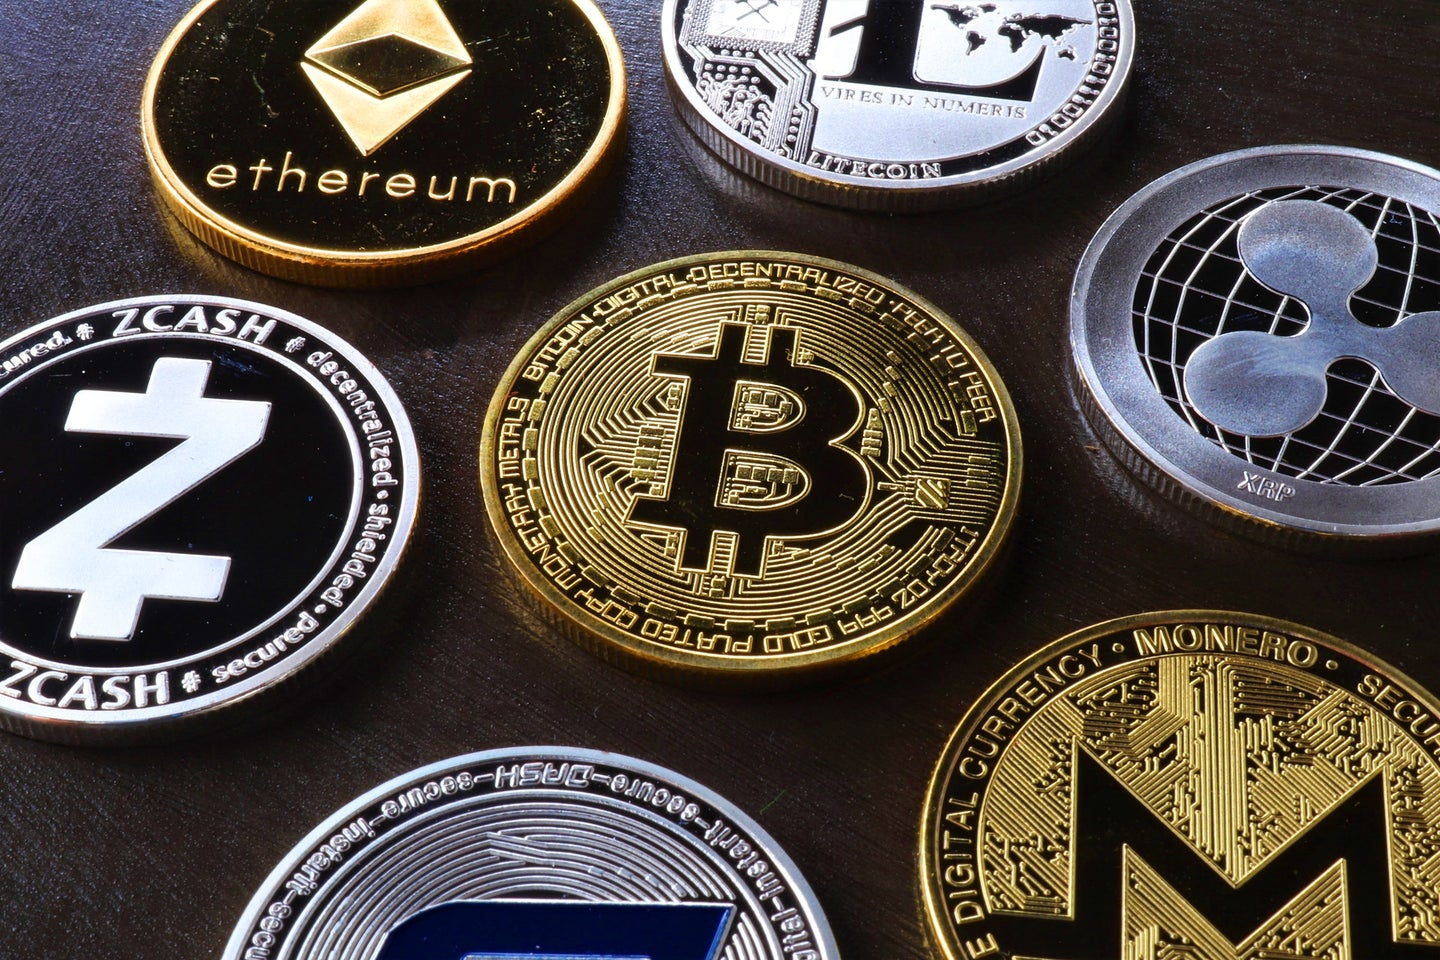 Physical depictions of digital cryptocurrency